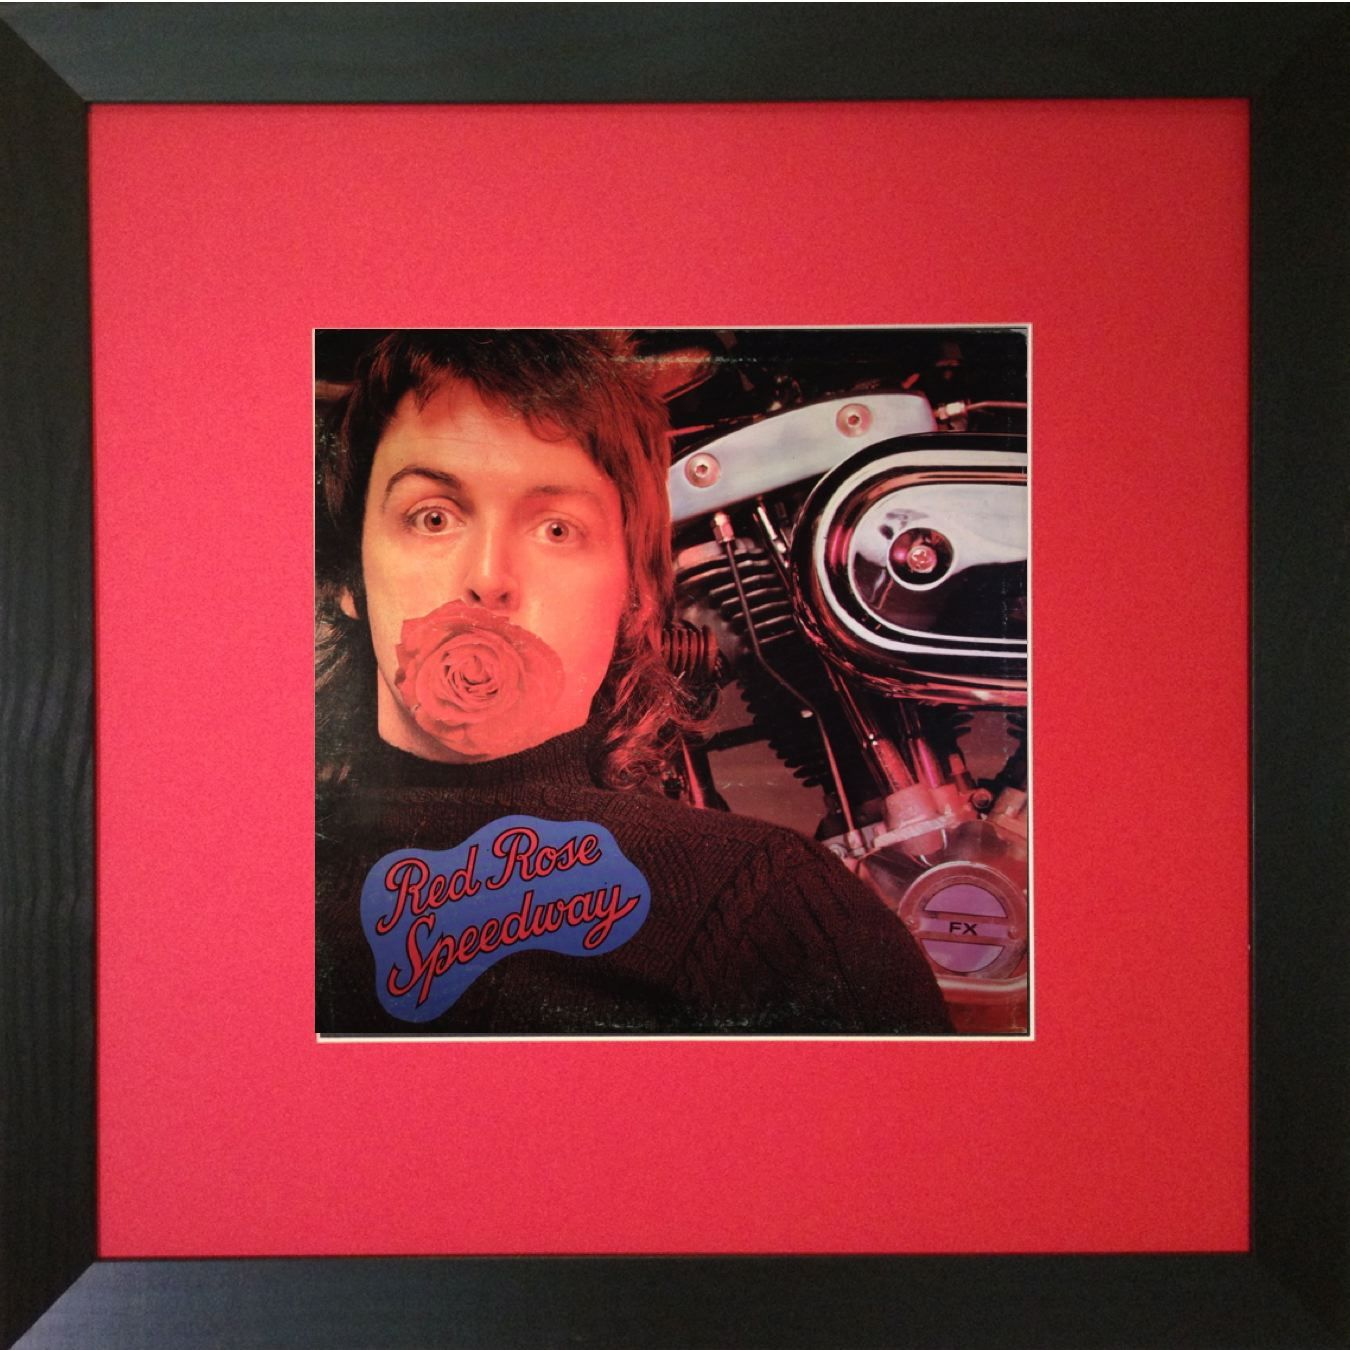 Mount Vinyl Paul McCartney Wings Red Rose Speedway Framed Album GBP99